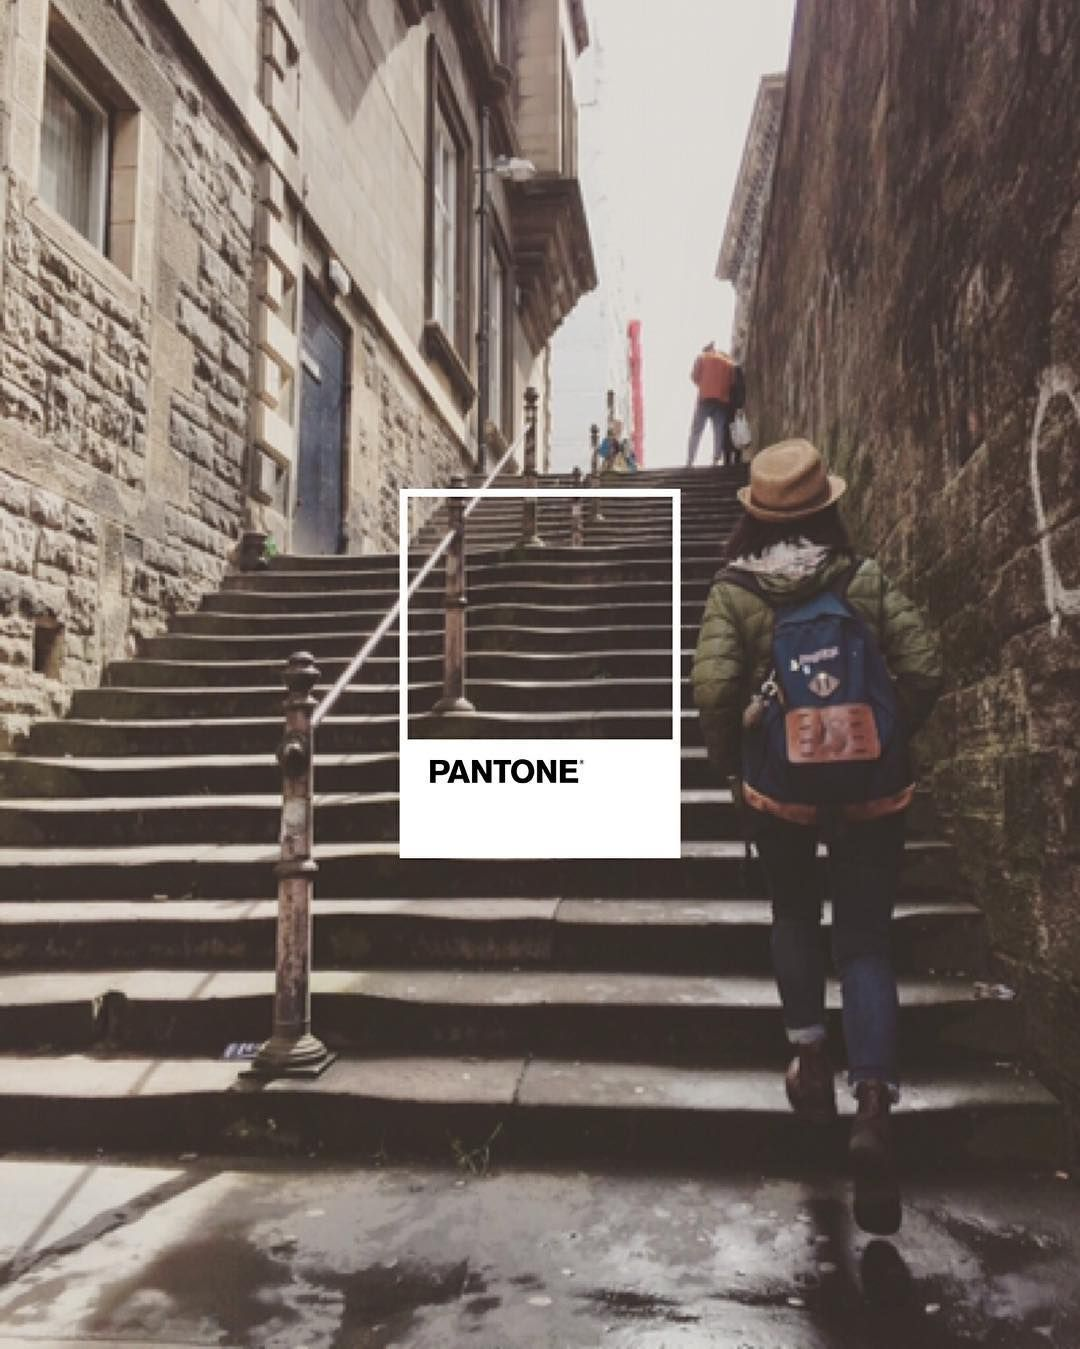 #pantone #coloursfortravelling #edinburgh #stairs #mikiandjoann